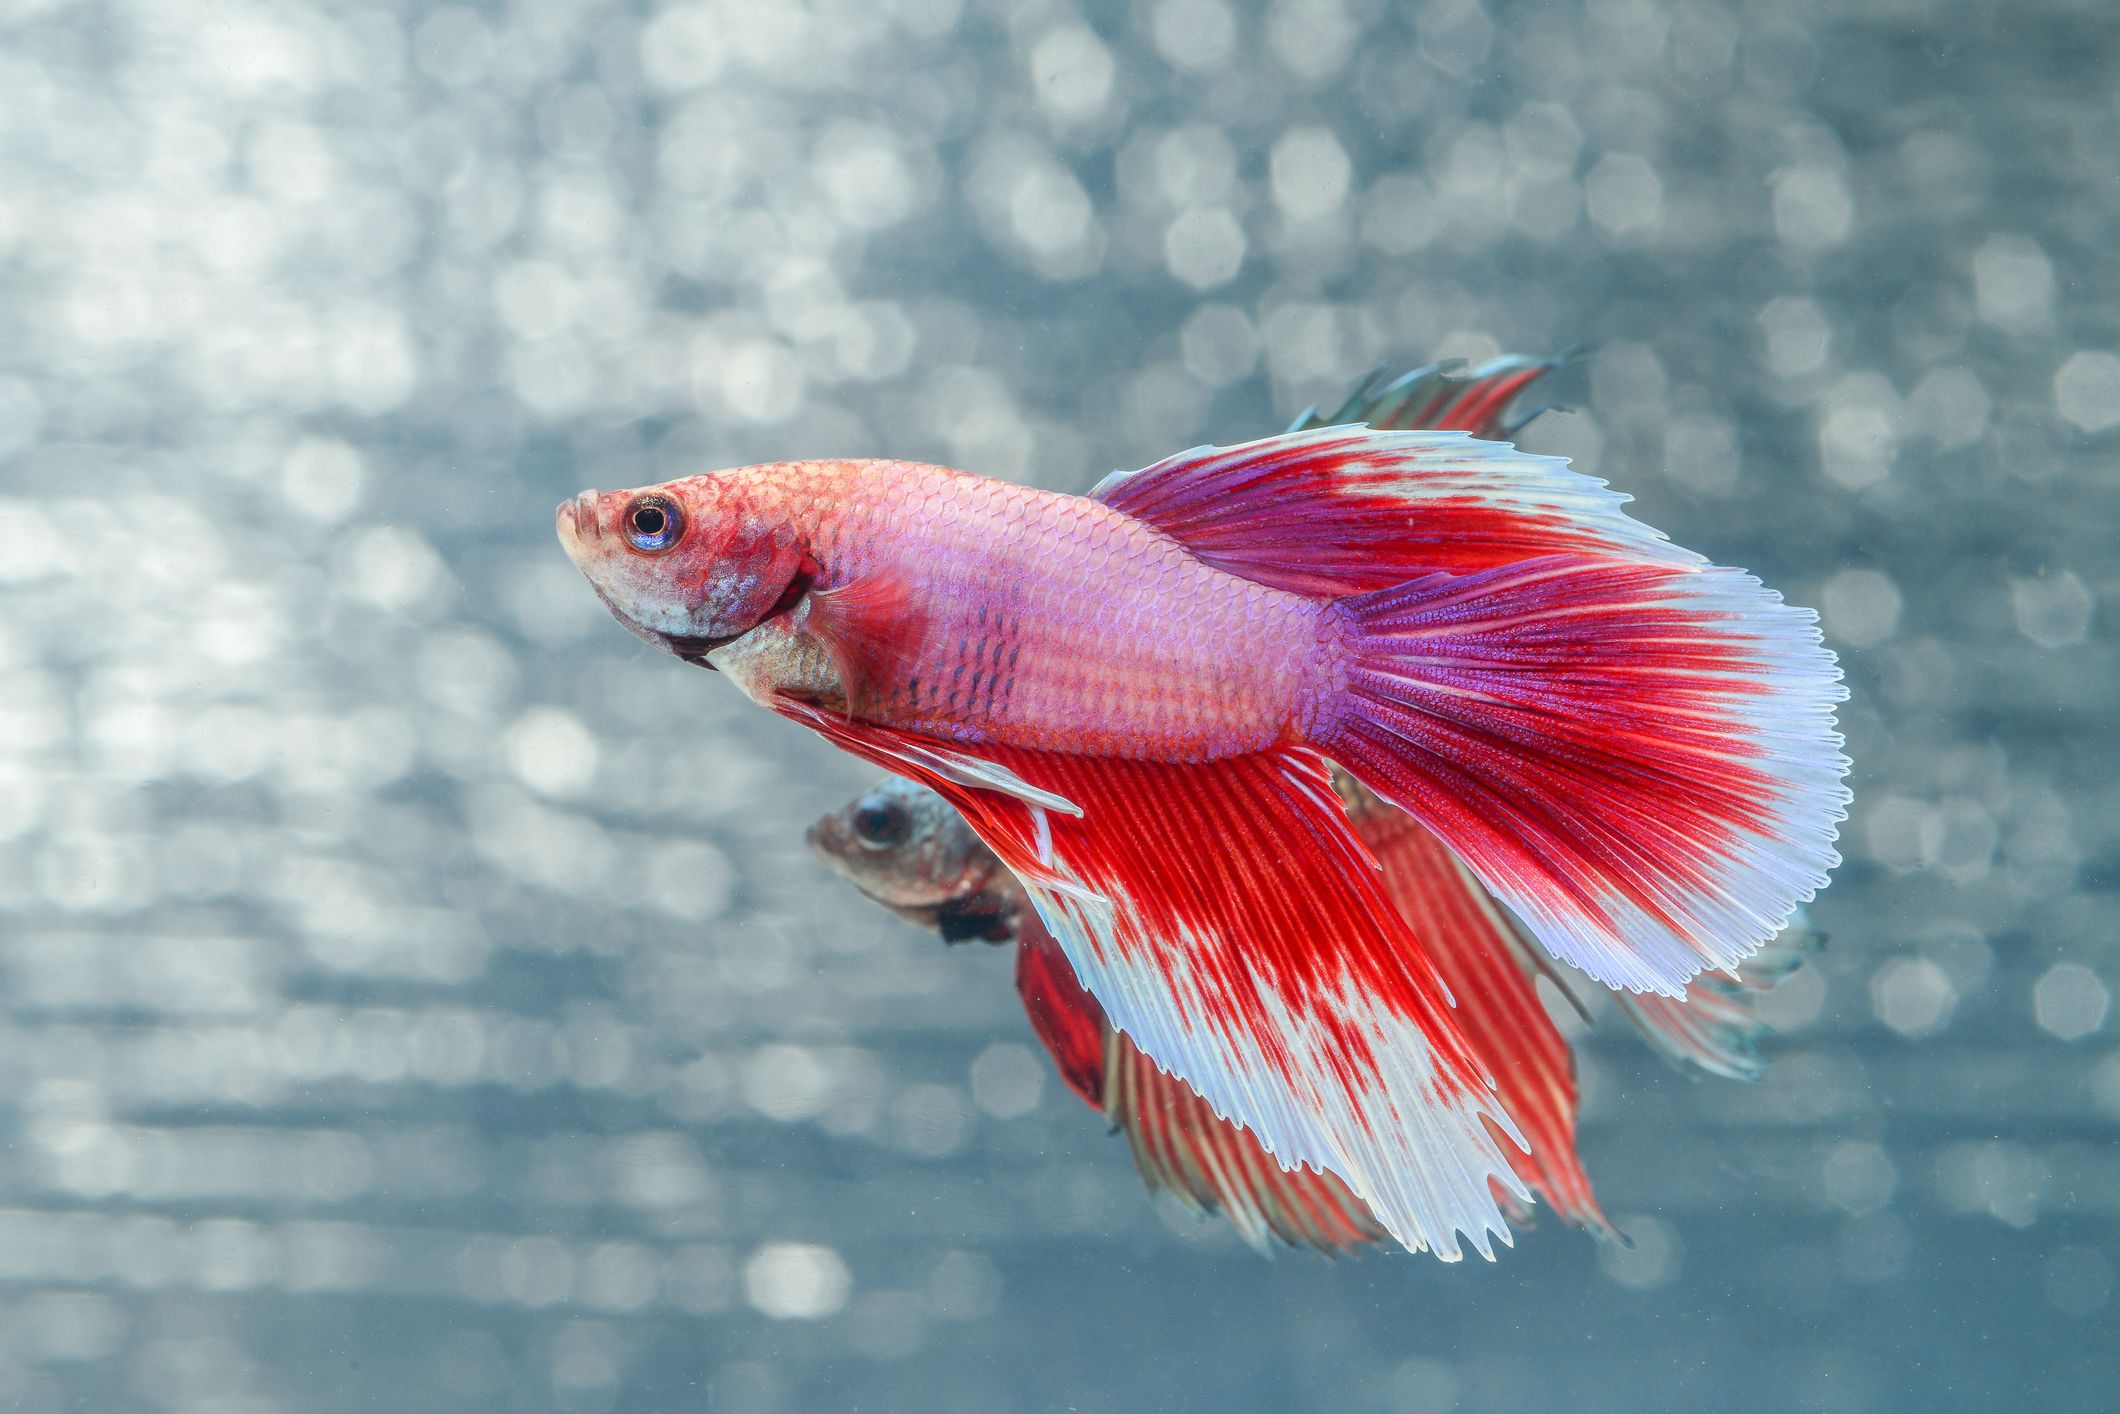 Find out how long betta fish live for Betta fish life expectancy